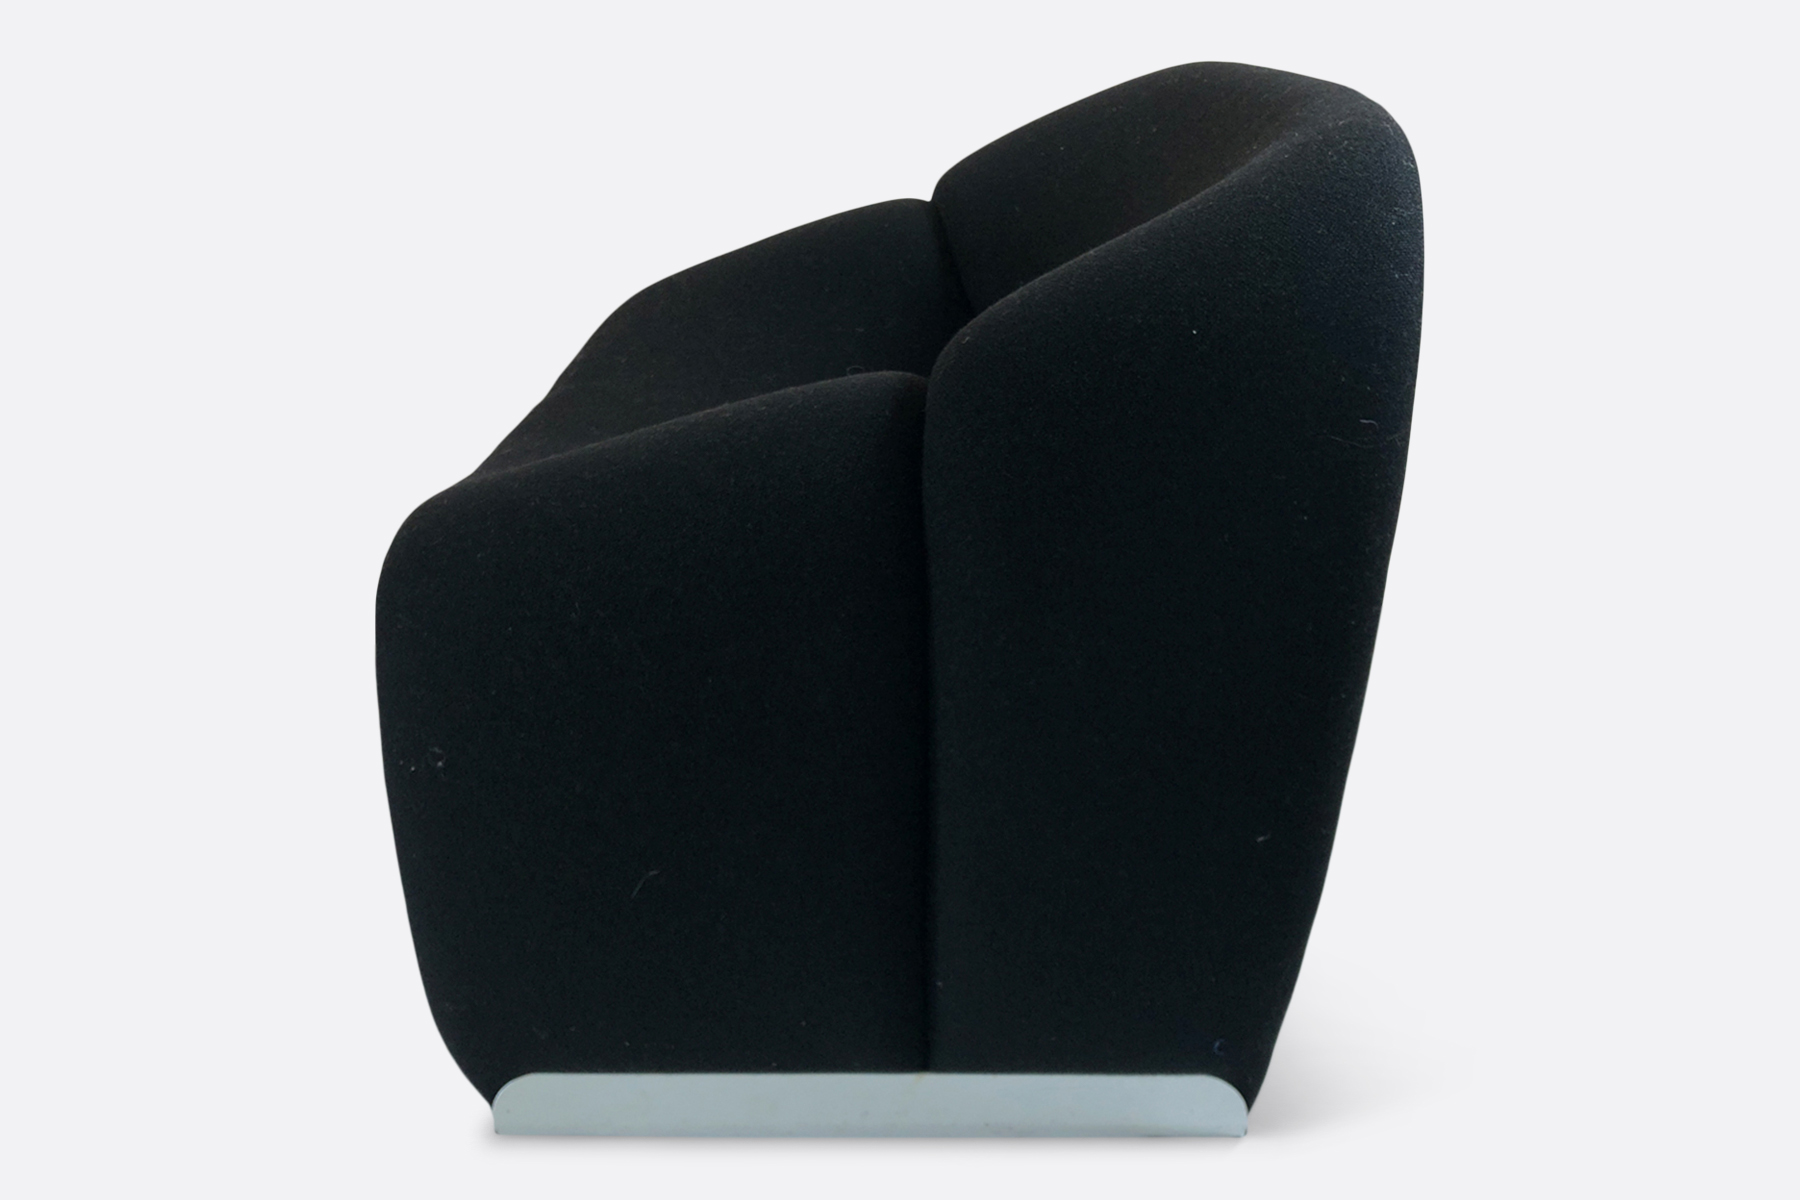 M F580 Groovy lounge chair